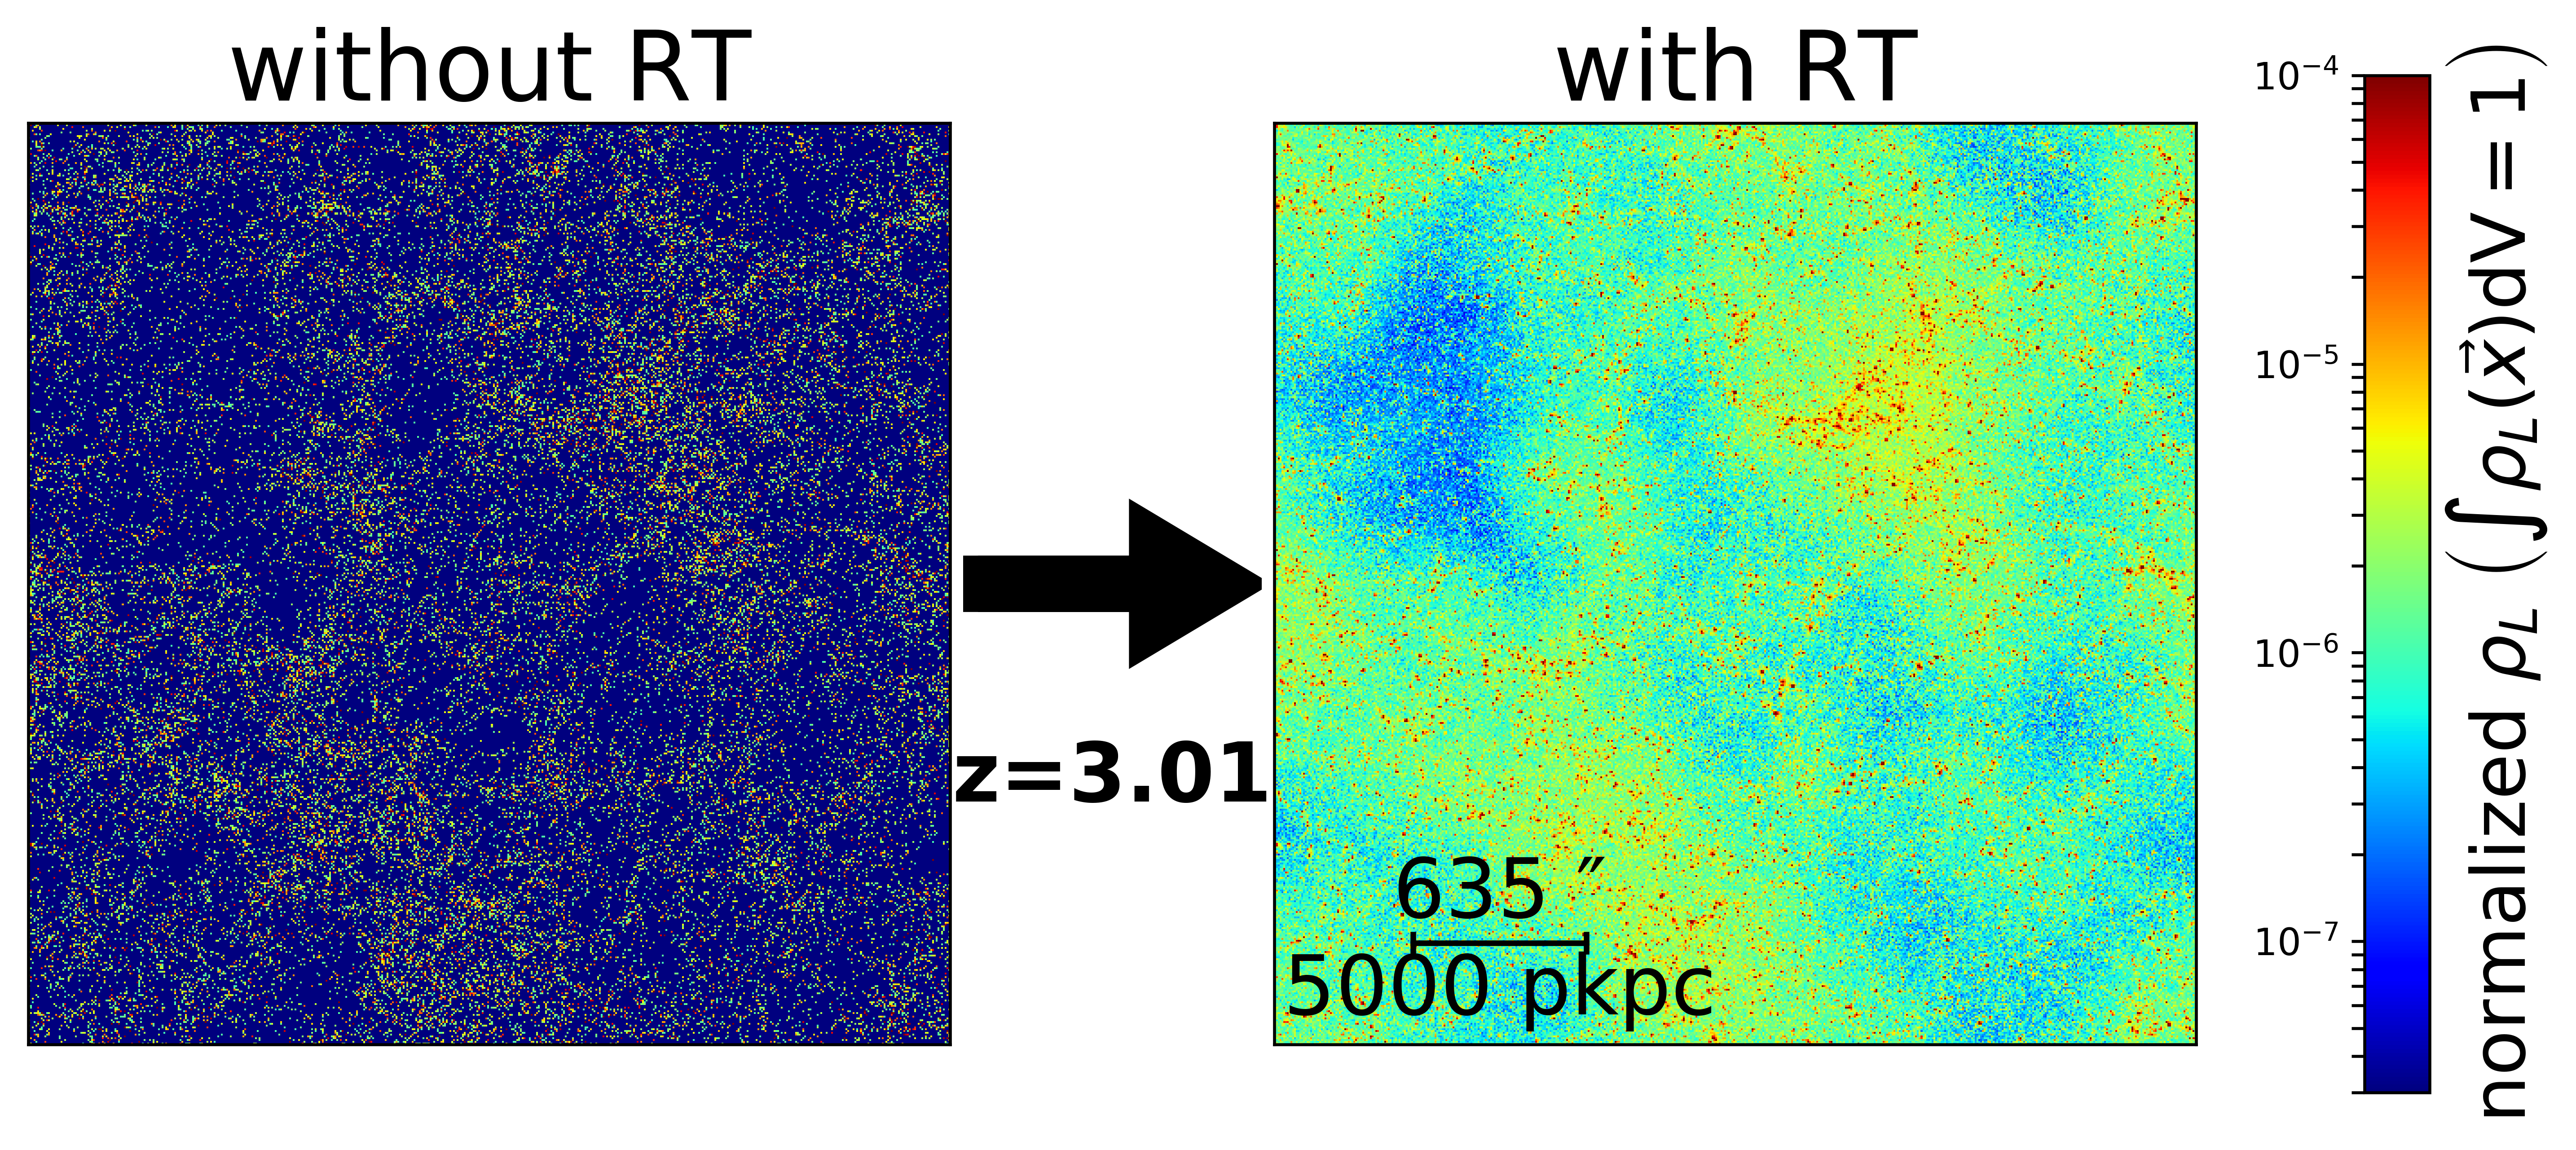 Example of the radiative transfer code applied to an Illustris snapshot at redshift $z=3.01$